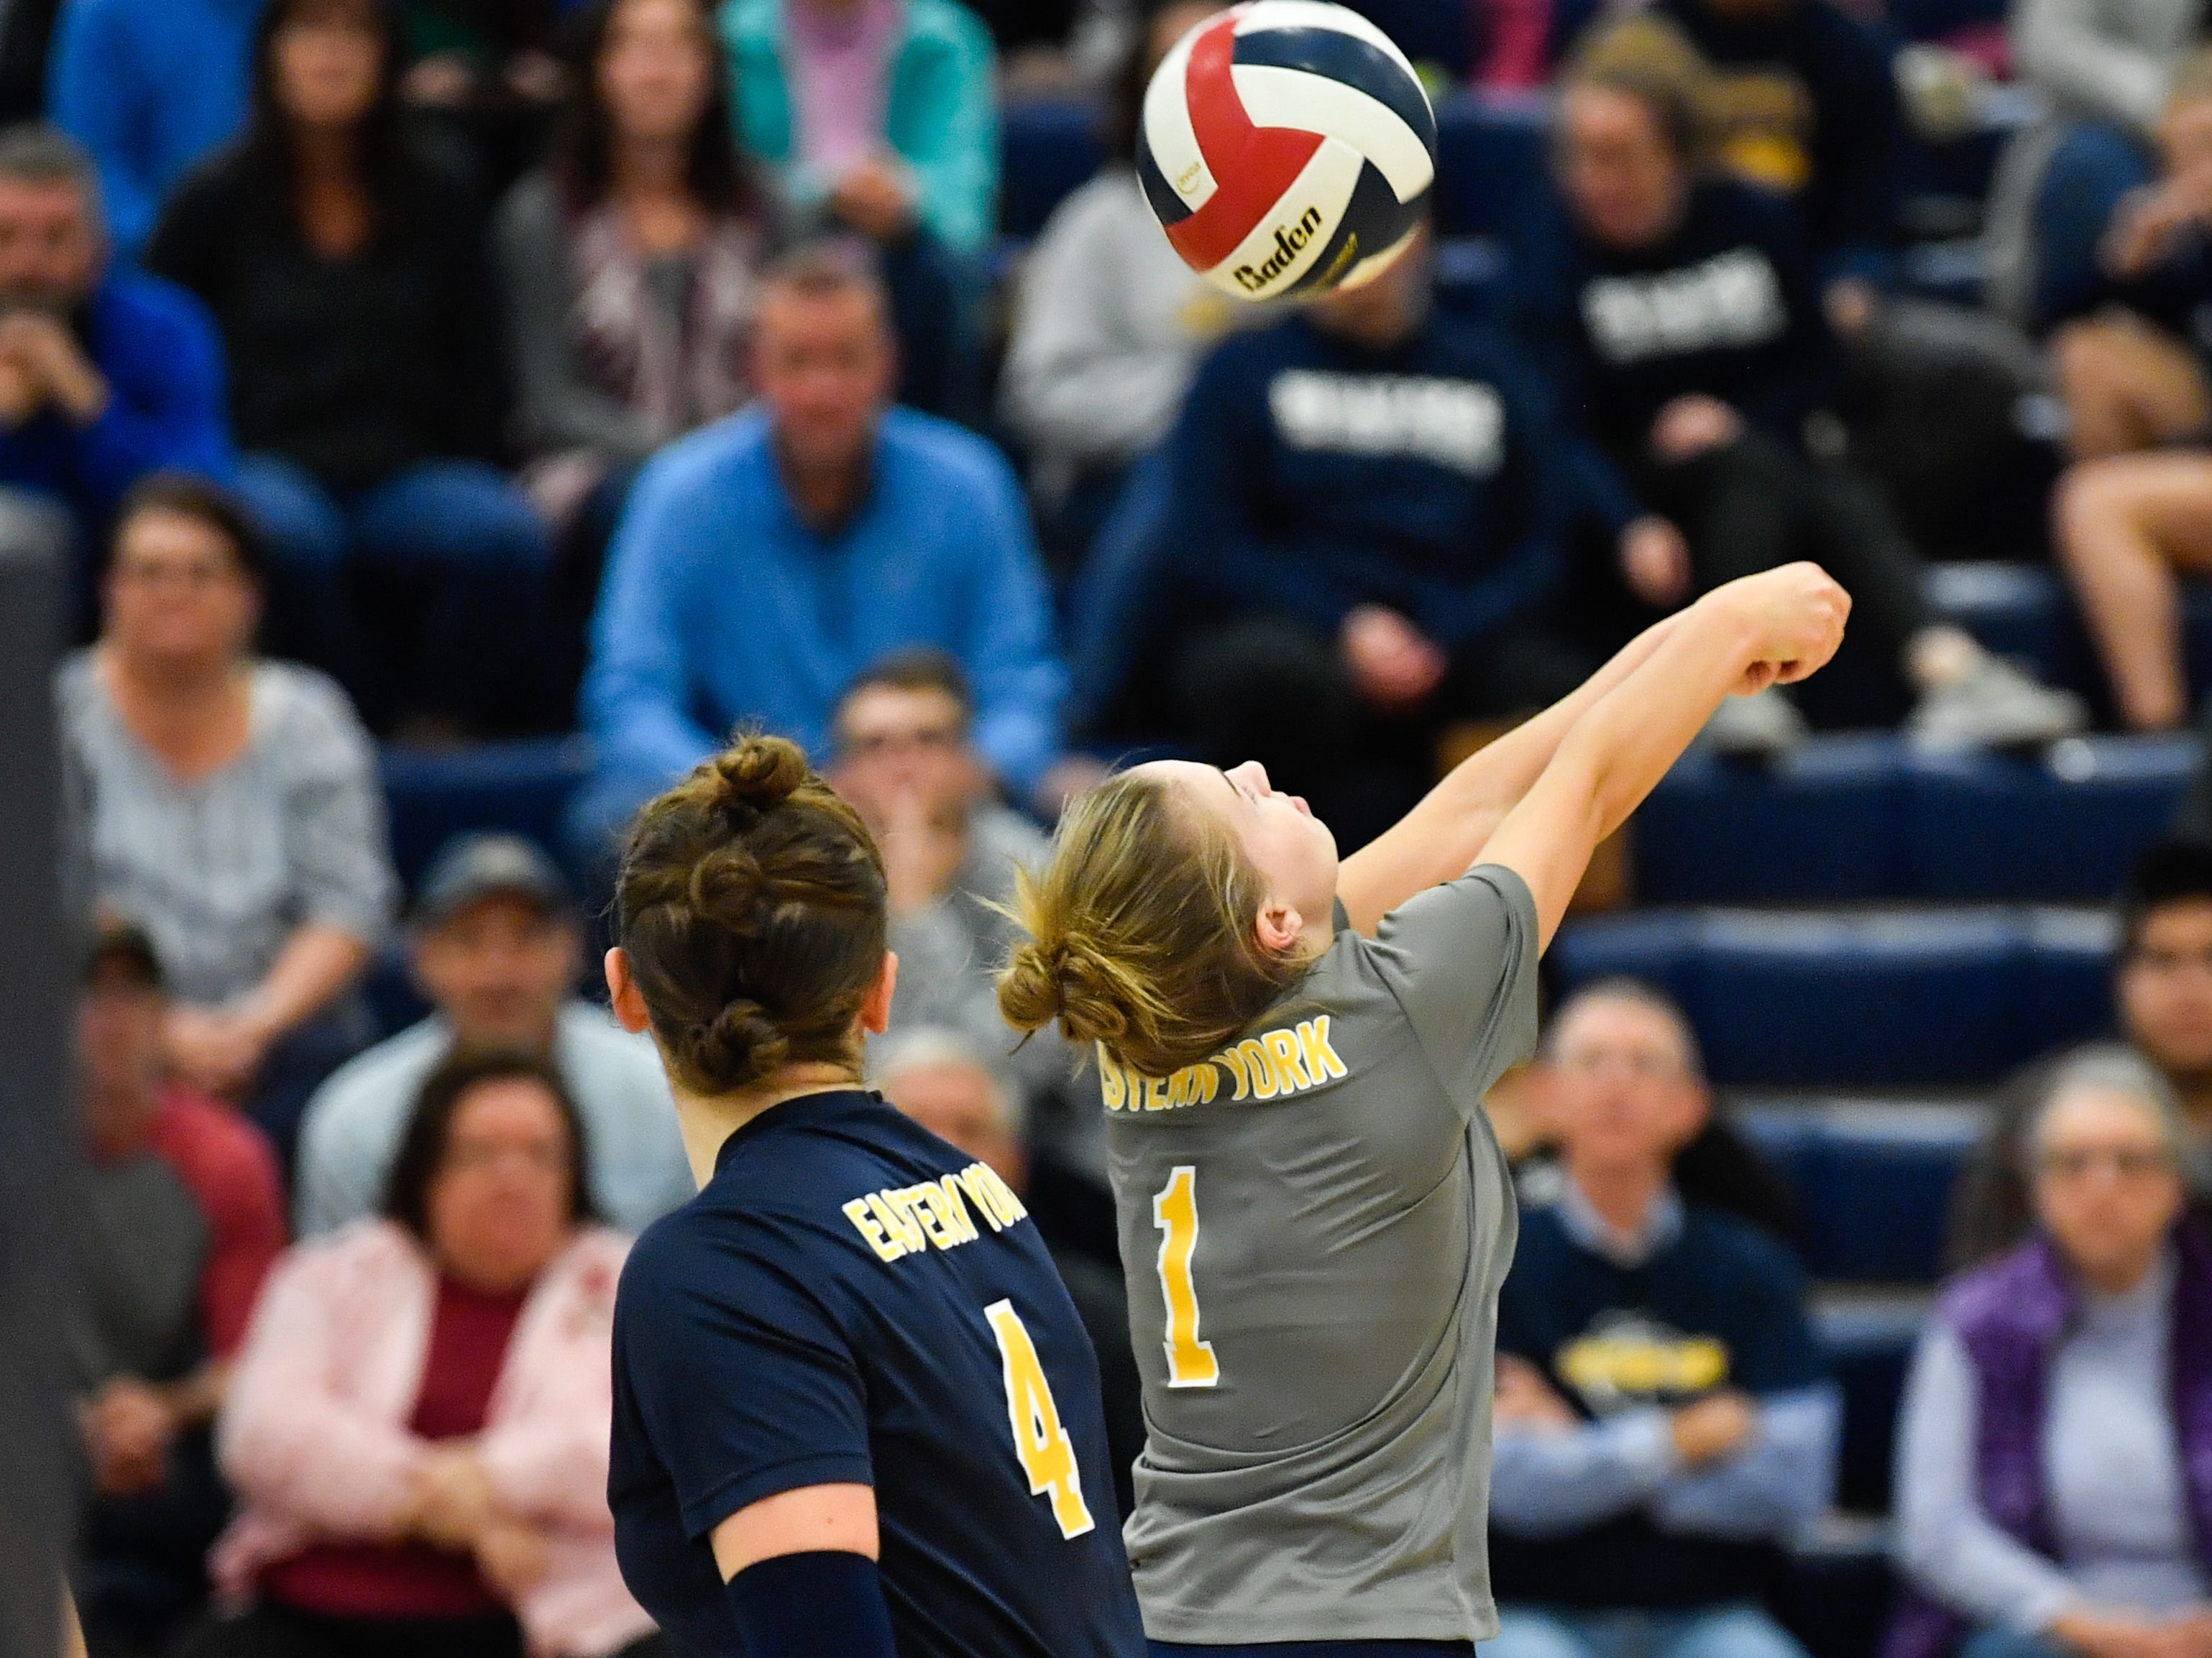 Olivia Koicuba (1) of Eastern York bumps the ball during the District 3 Class 3A girls' volleyball quarterfinals between West York and Eastern York at West York High School, October 30, 2018. The Bulldogs defeated the Golden Knights 3-0.